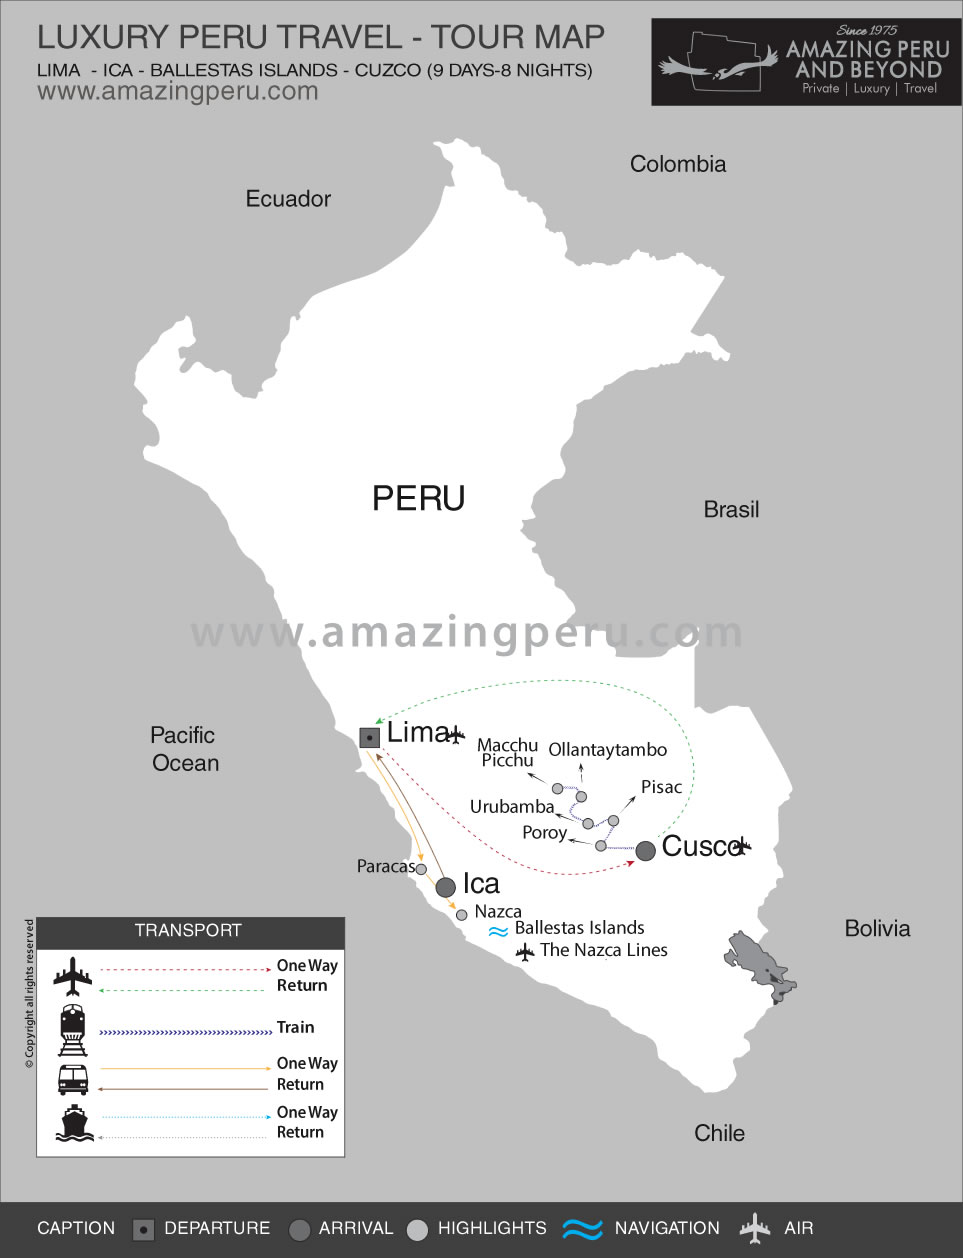 Luxury Peru Jewels Tour - 11 days / 10 nights.